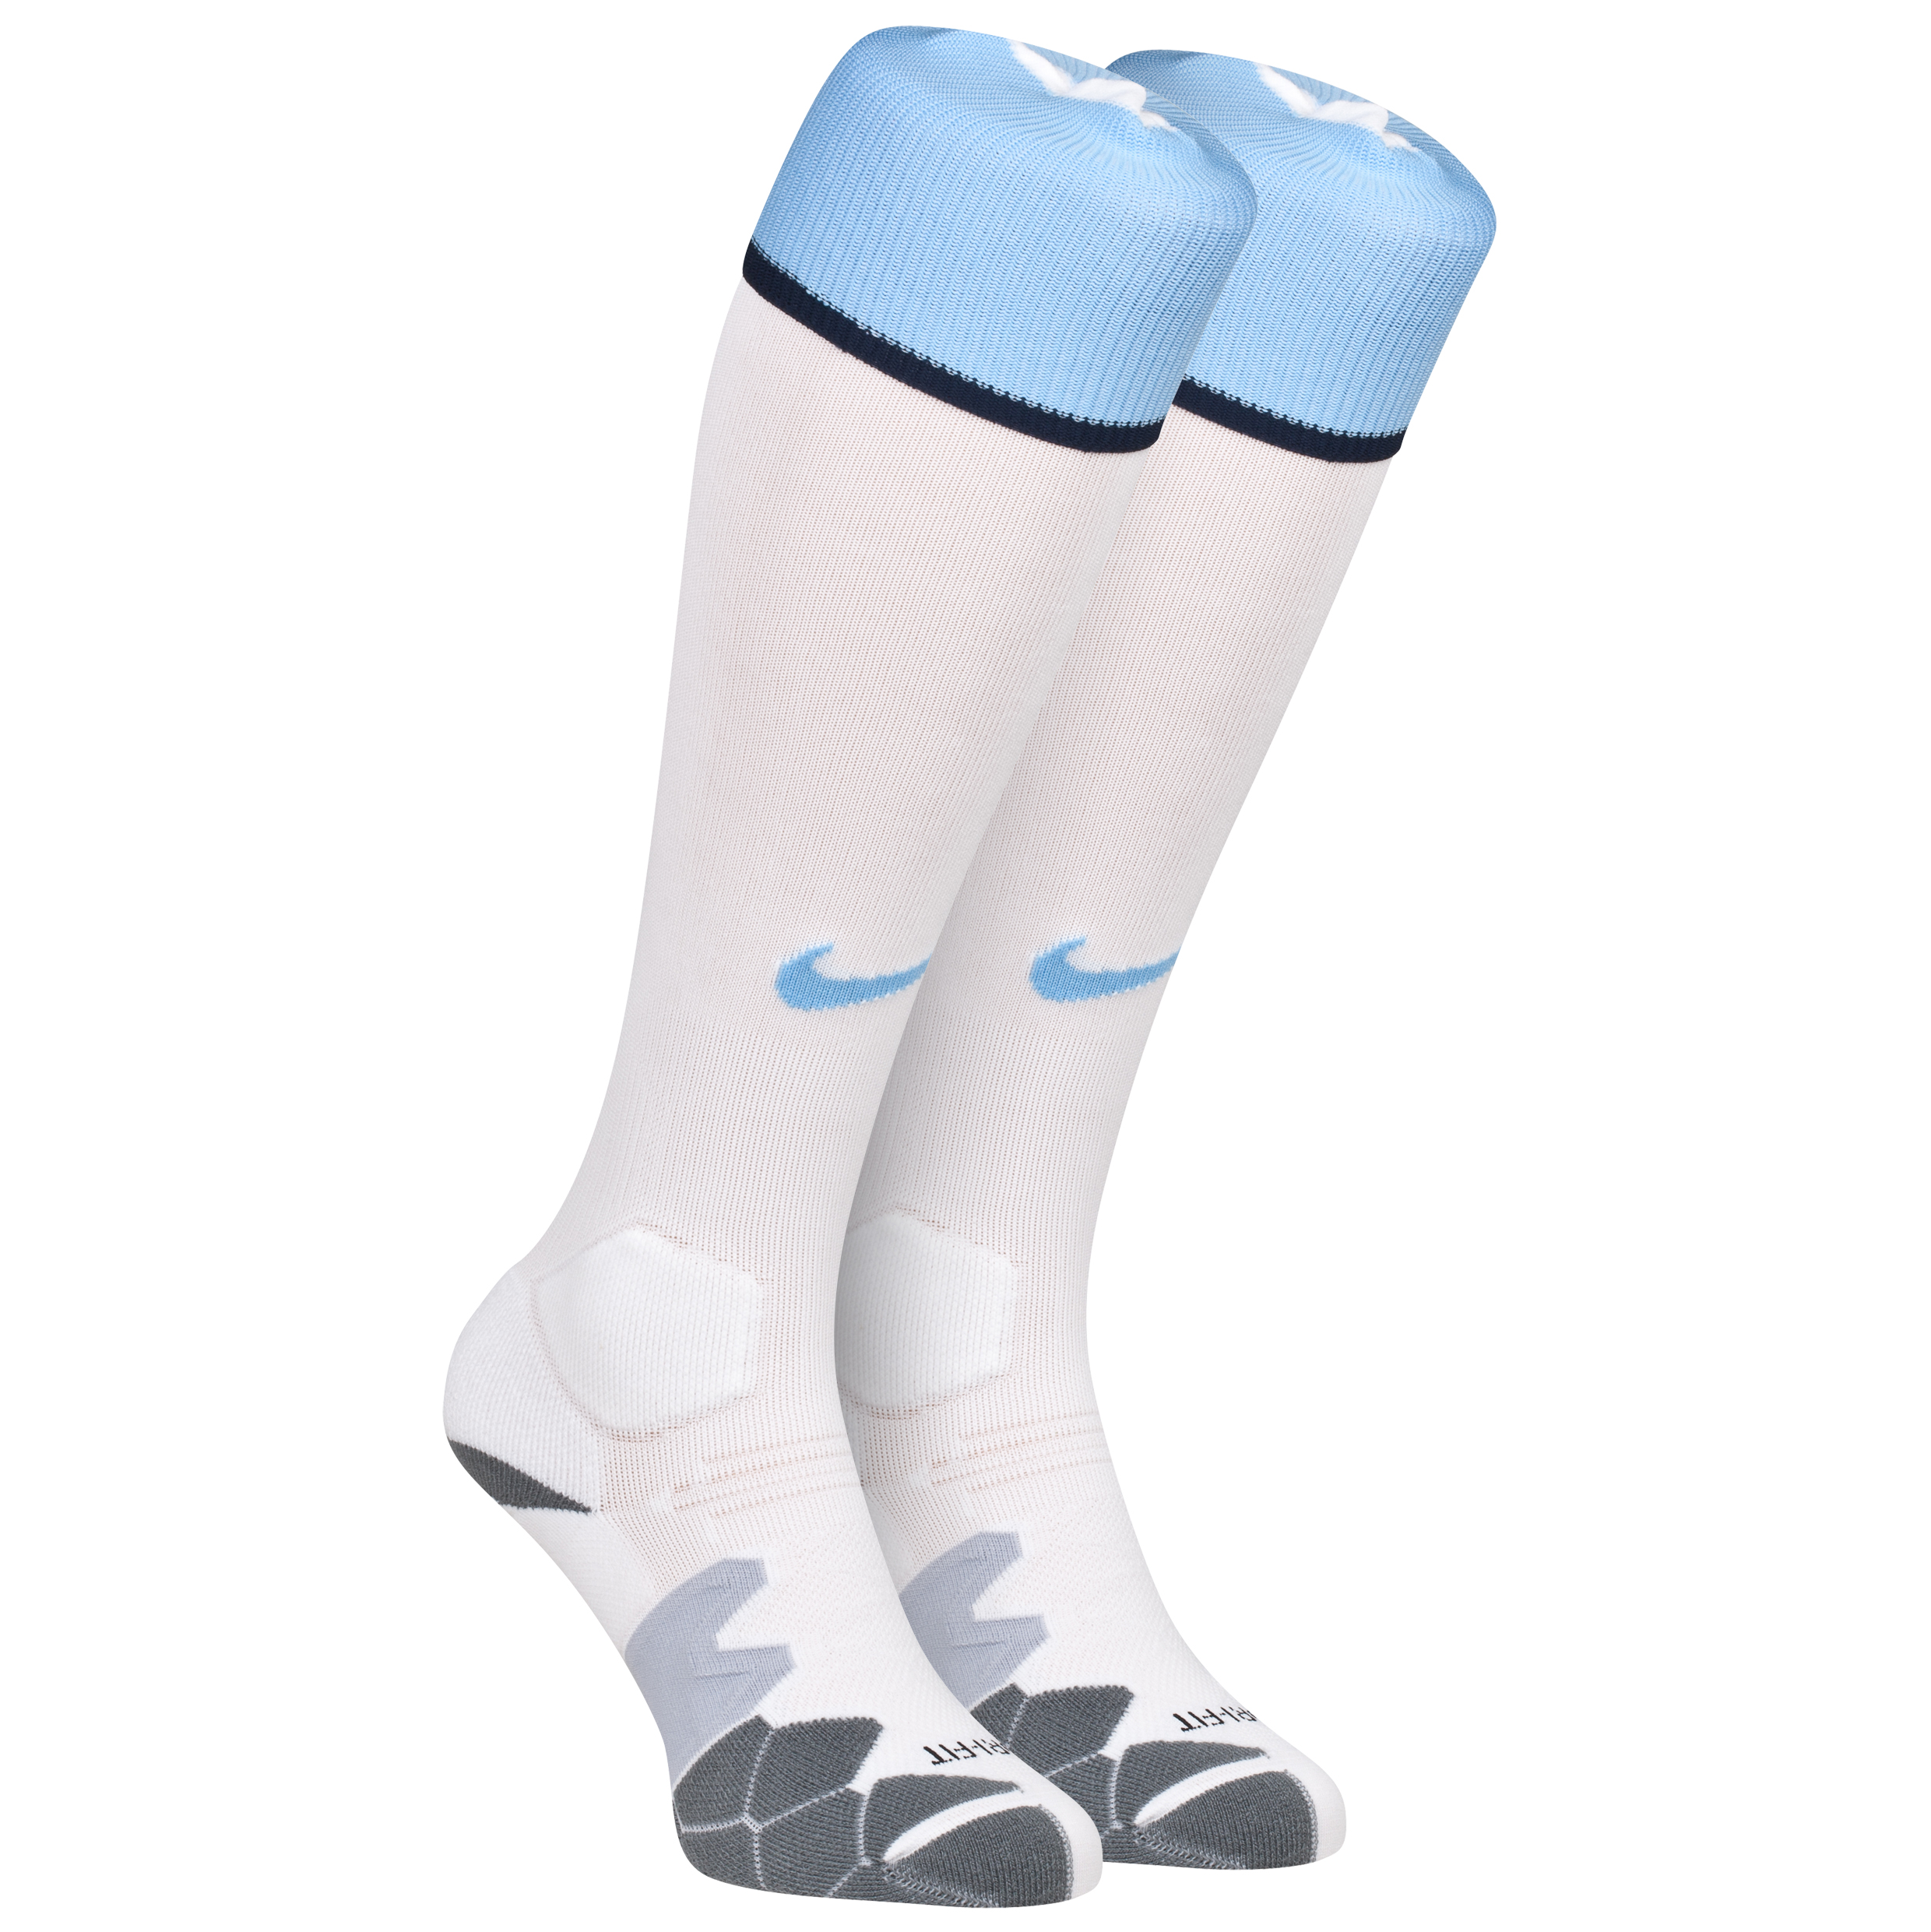 Manchester City Home Sock 2013/14